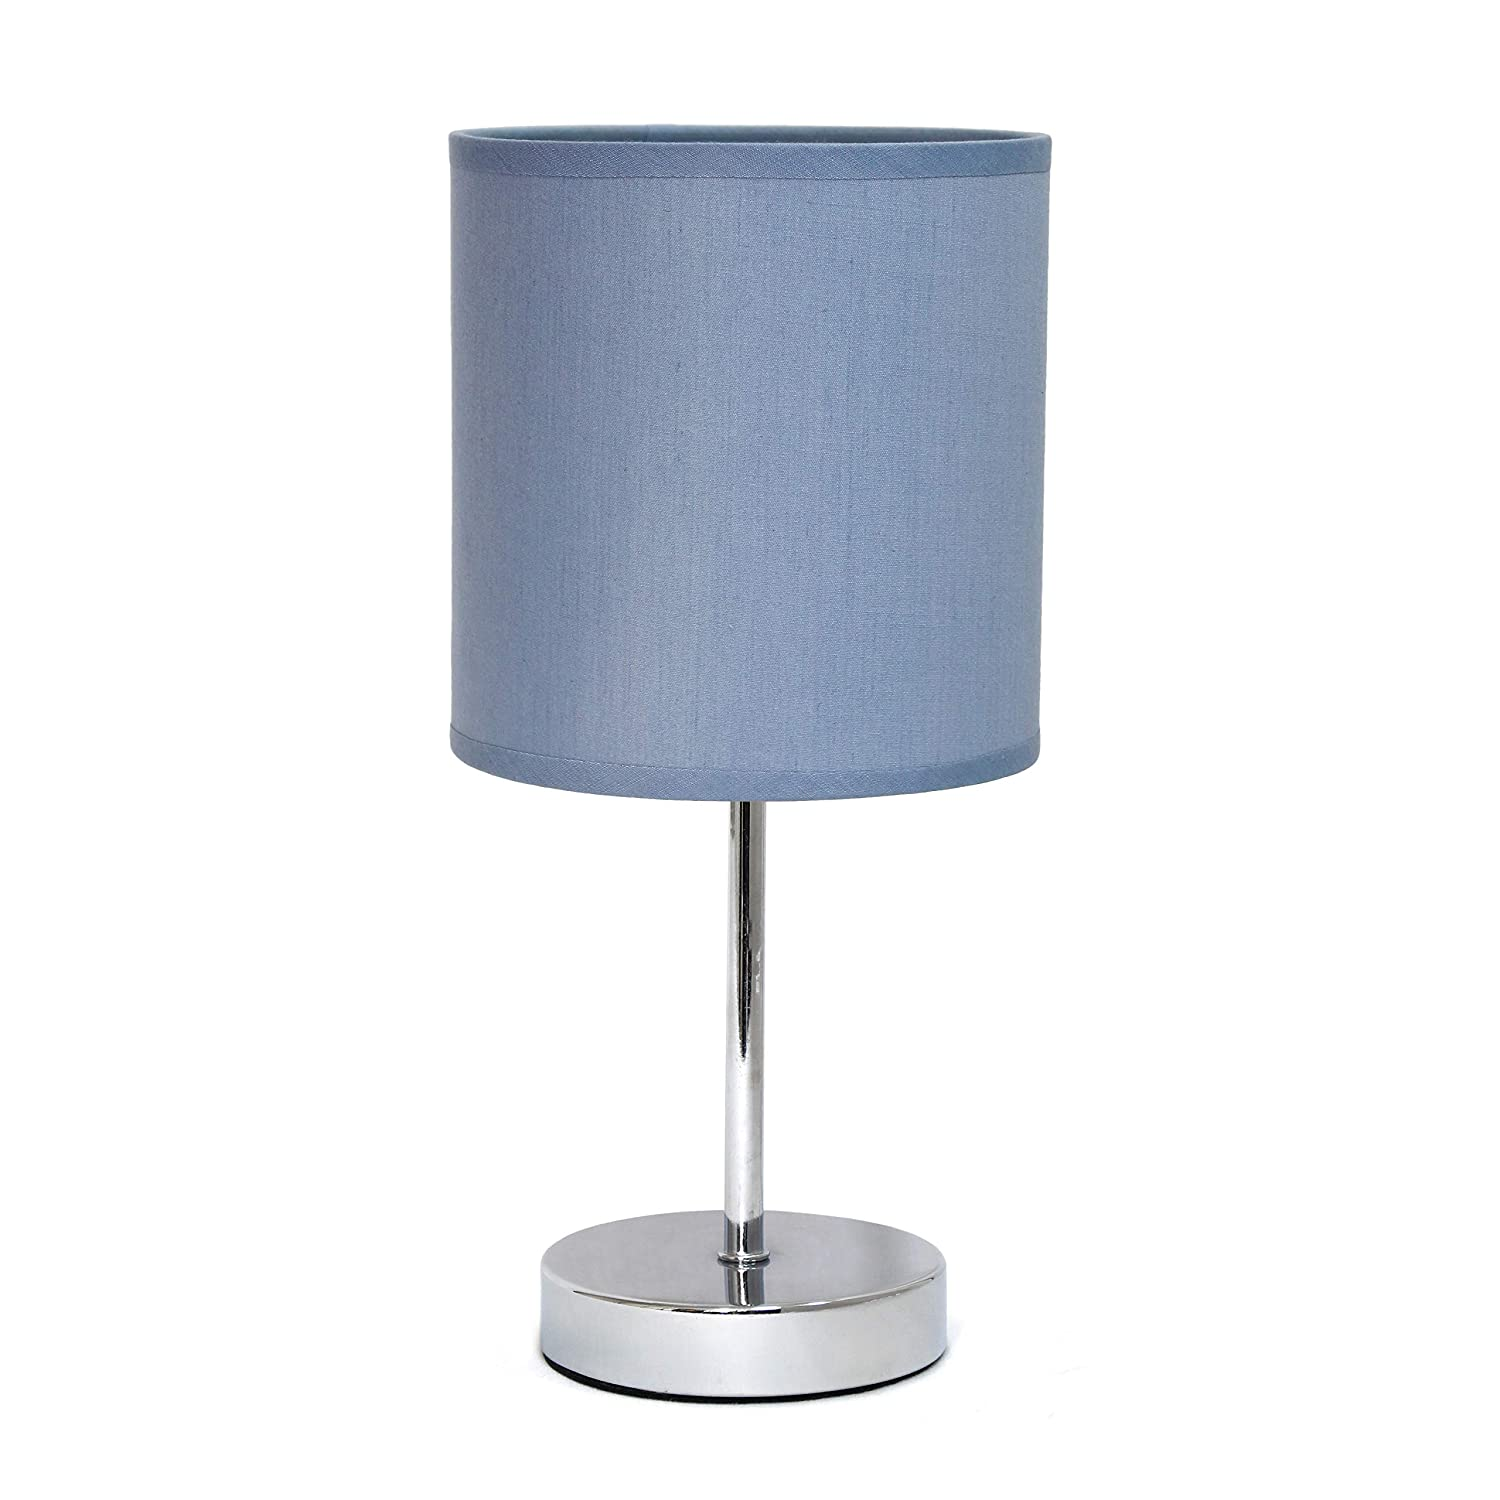 "Simple Designs Home LT2007-PRP Simple Designs Chrome Mini Basic Table Lamp with Fabric Shade, 5.51"" x 5.51"" x 11.81"", Purple"